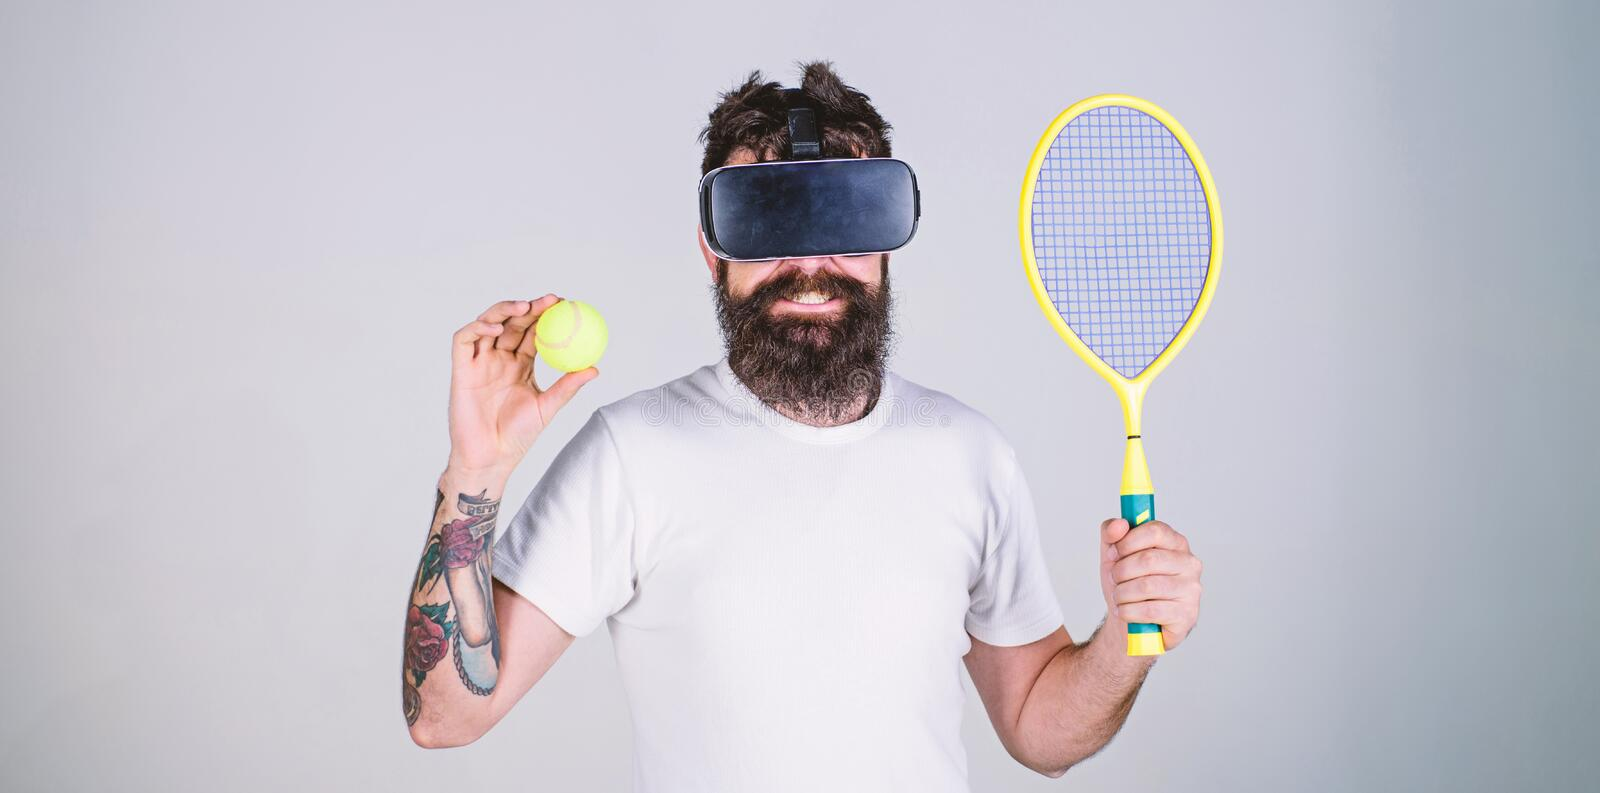 Guy with VR glasses play tennis with racket and ball. Man with beard in VR glasses play tennis, grey background. Hipster. On smiling face use modern technology royalty free stock photos